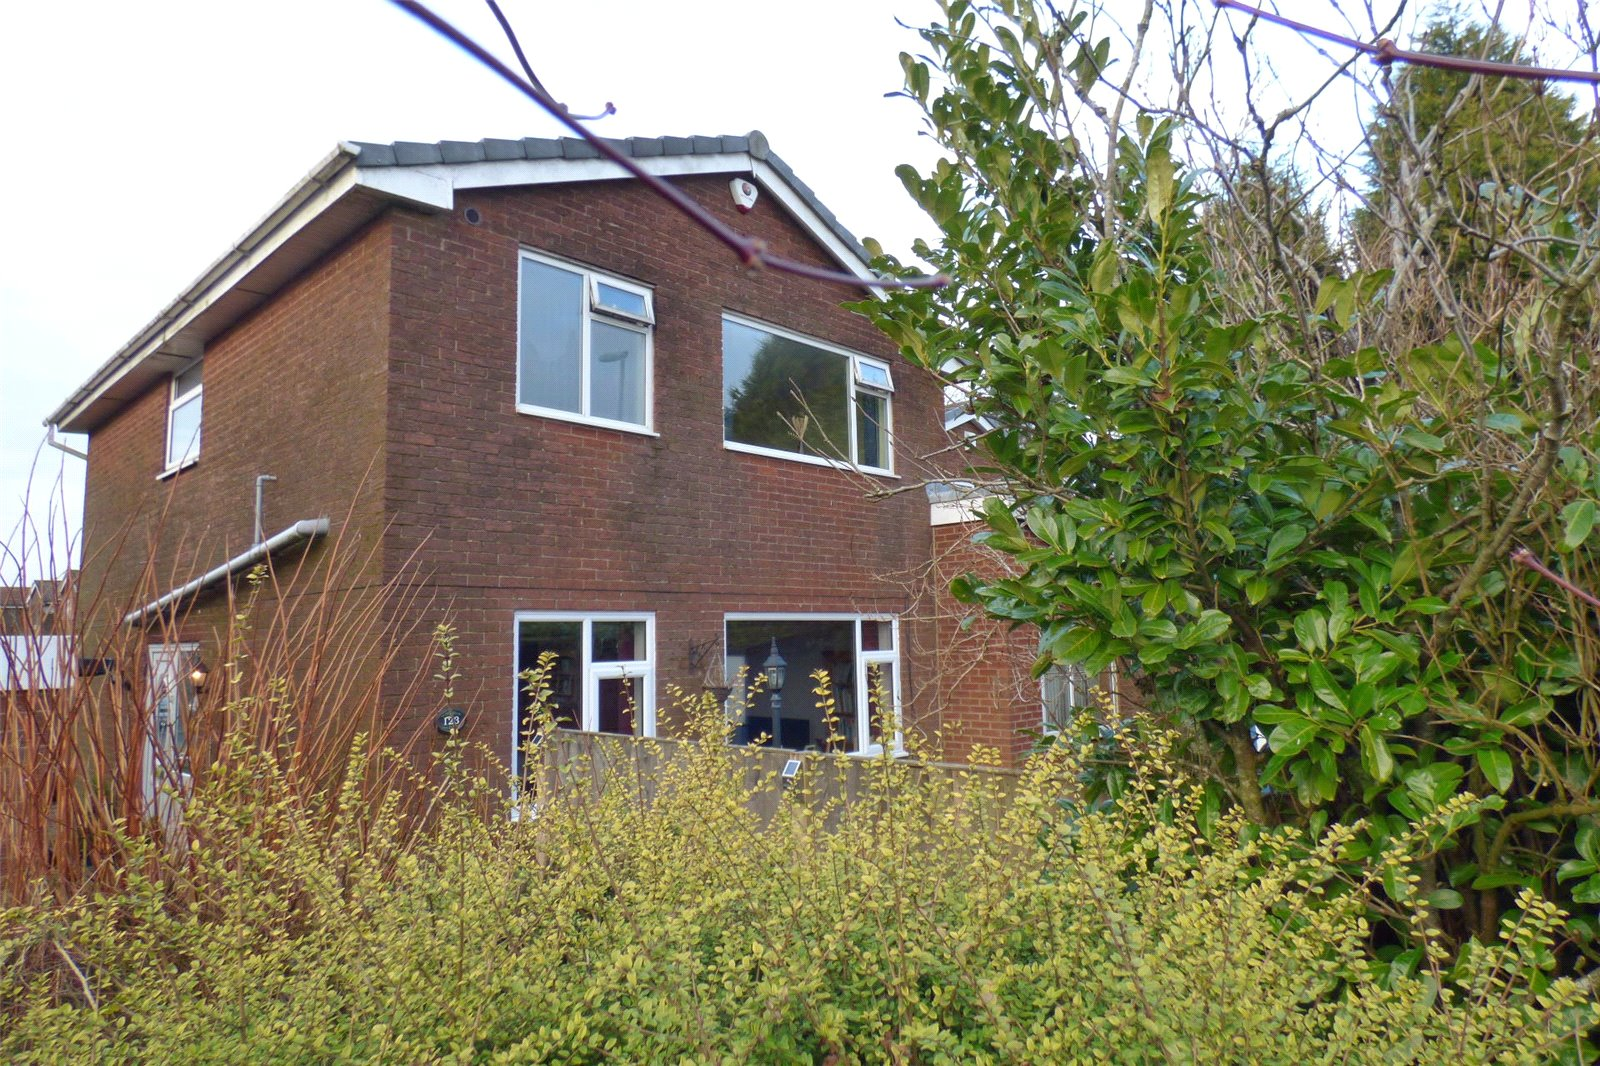 4 Bedrooms Detached House for sale in Turf Pit Lane, Moorside, Oldham, Greater Manchester, OL4